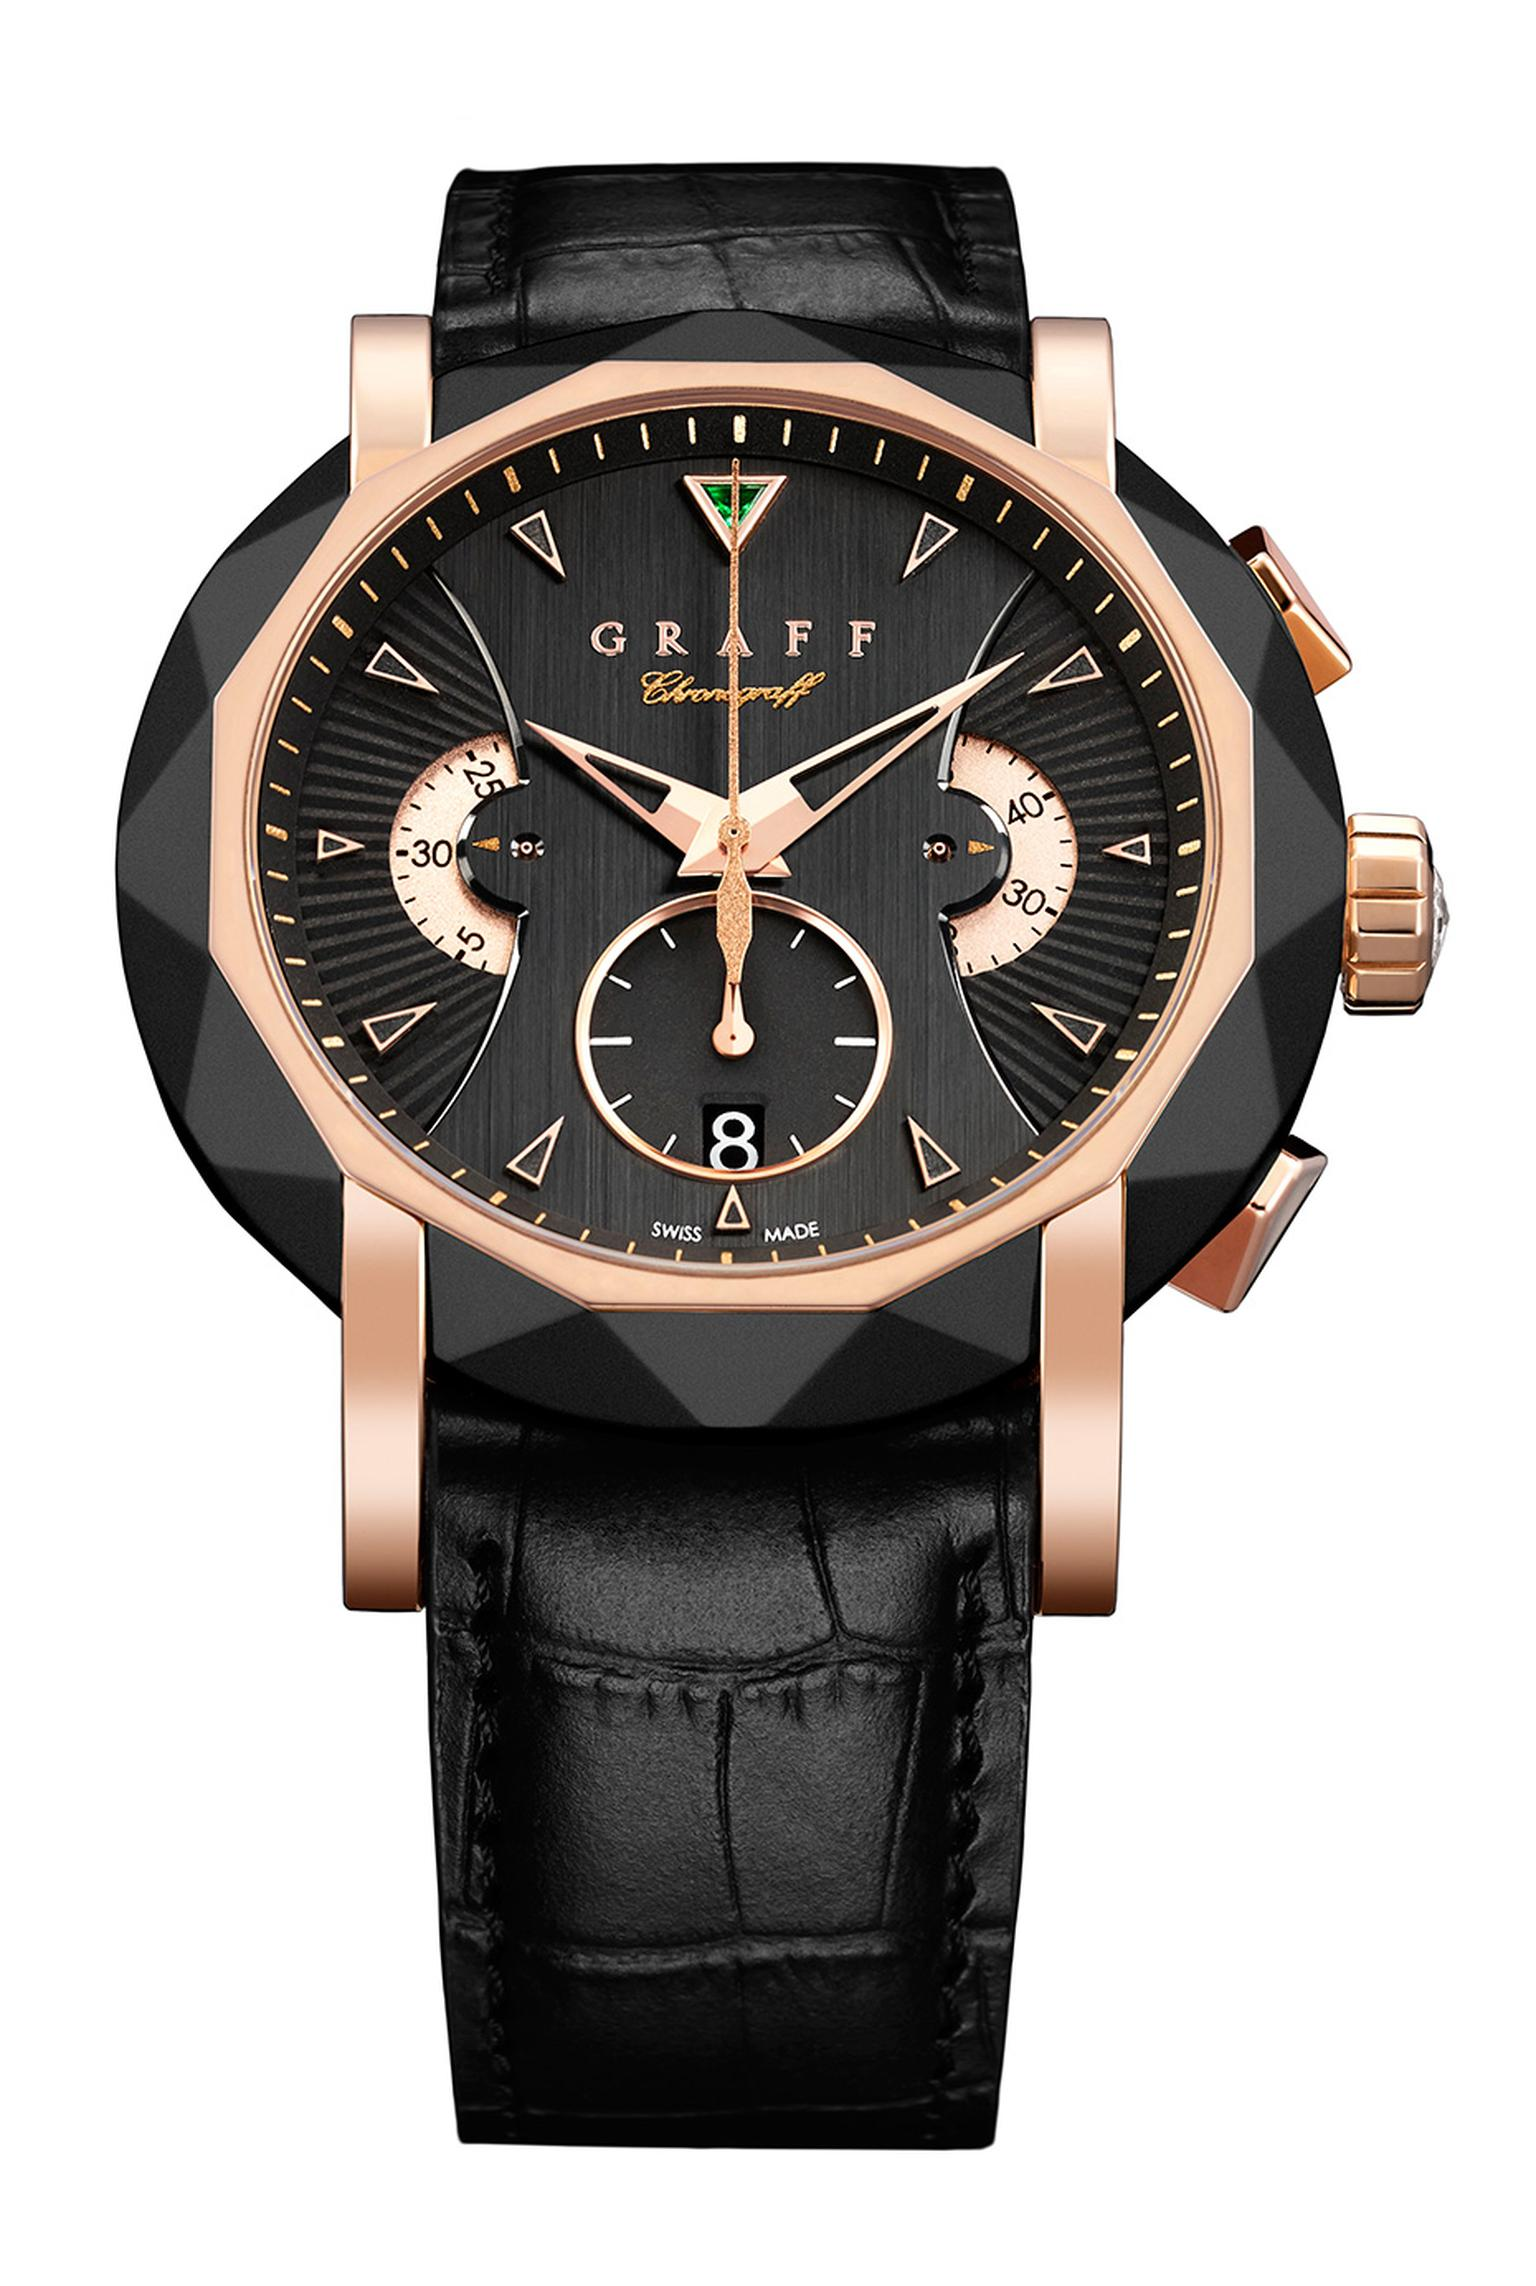 Graff 45mm rose gold Grand Date watch featuring a black guilloché dial.